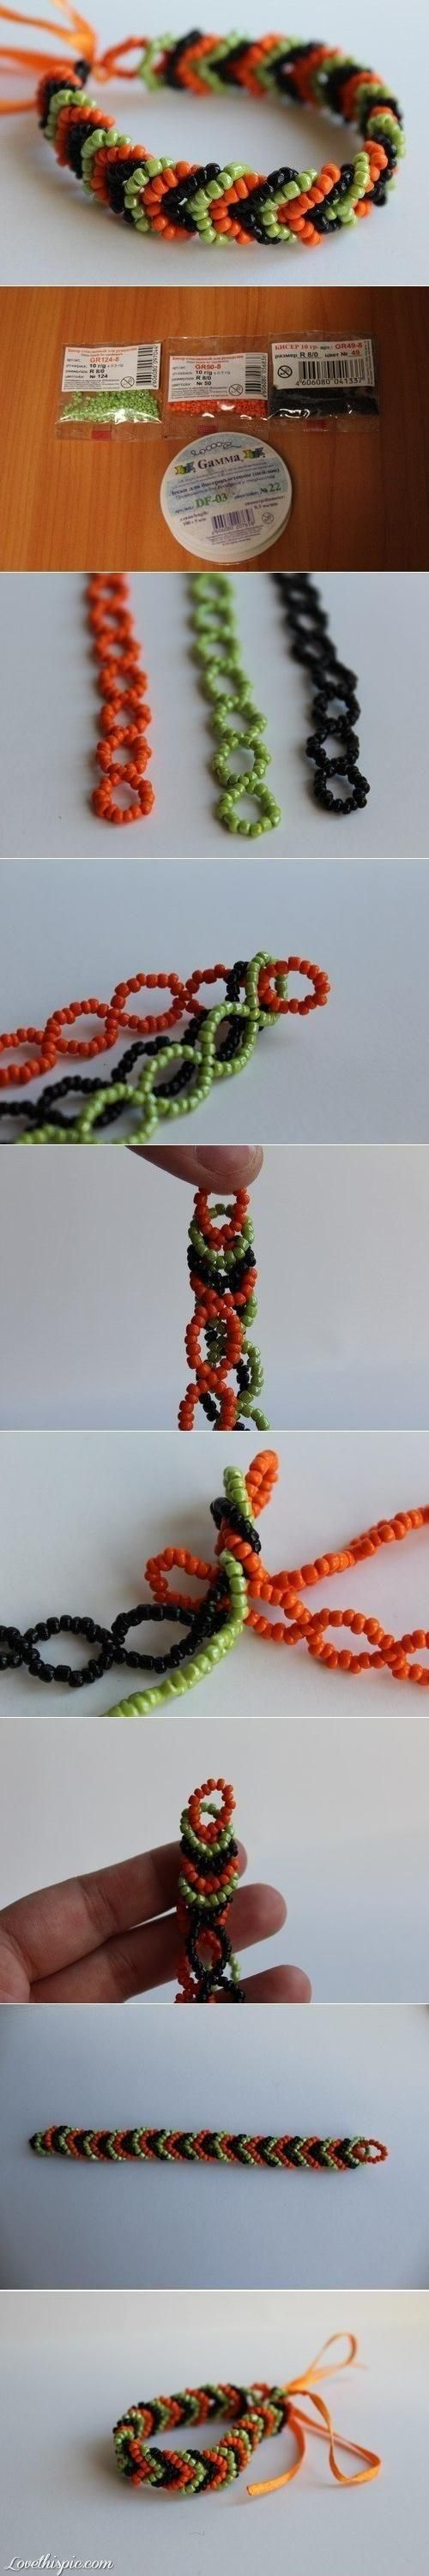 DIY Triple Braided Bracelet. Craft ideas 2519 - LC.Pandahall.com